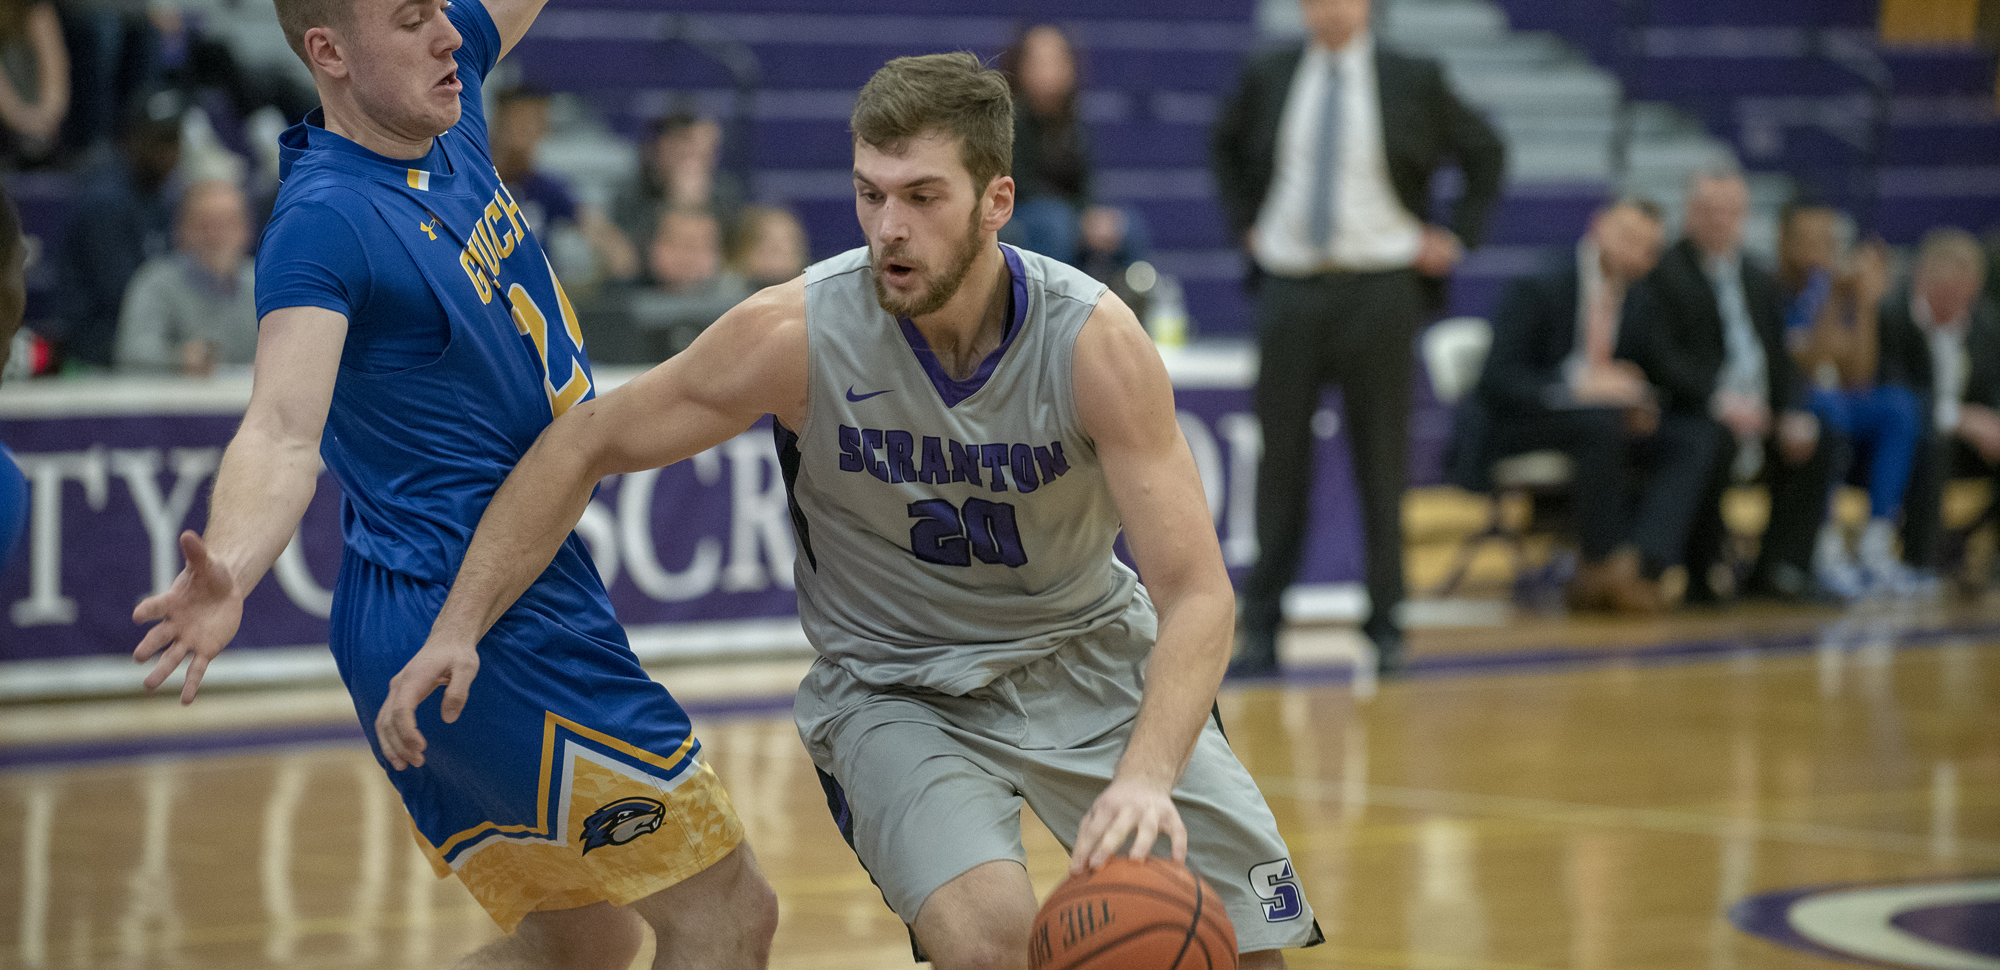 Matthew Mancuso scored 18 points to go along with game-highs of six assists and two blocks while leading Scranton with seven rebounds in Wednesday night's loss to Susquehanna.